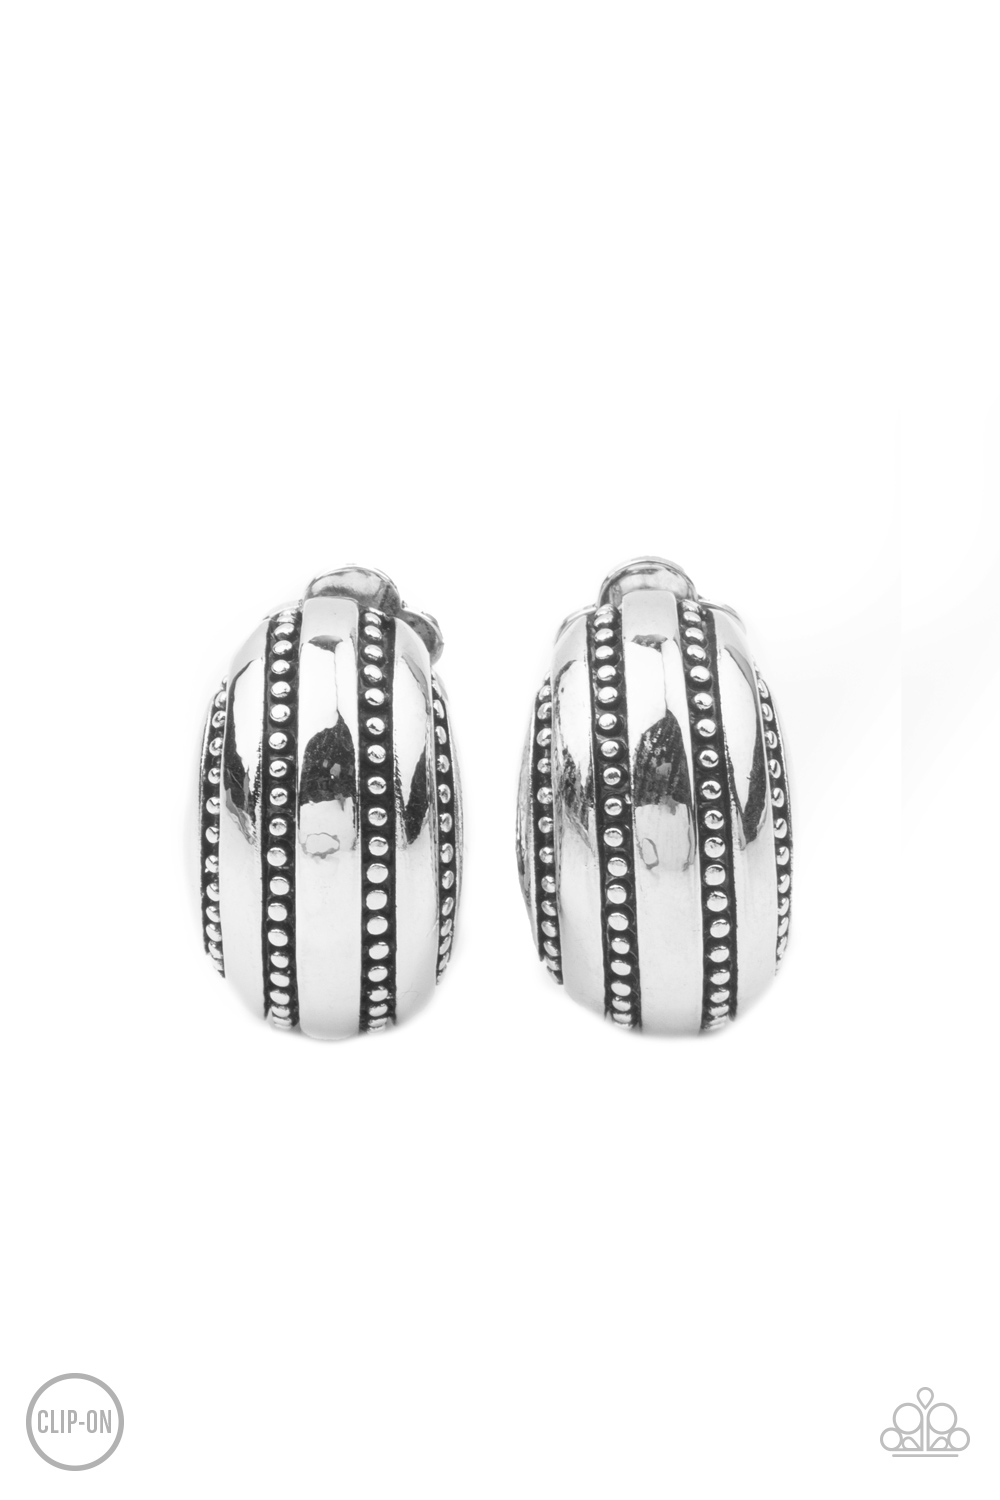 Paparazzi Accessories:  Rural Expressions - Silver (23)